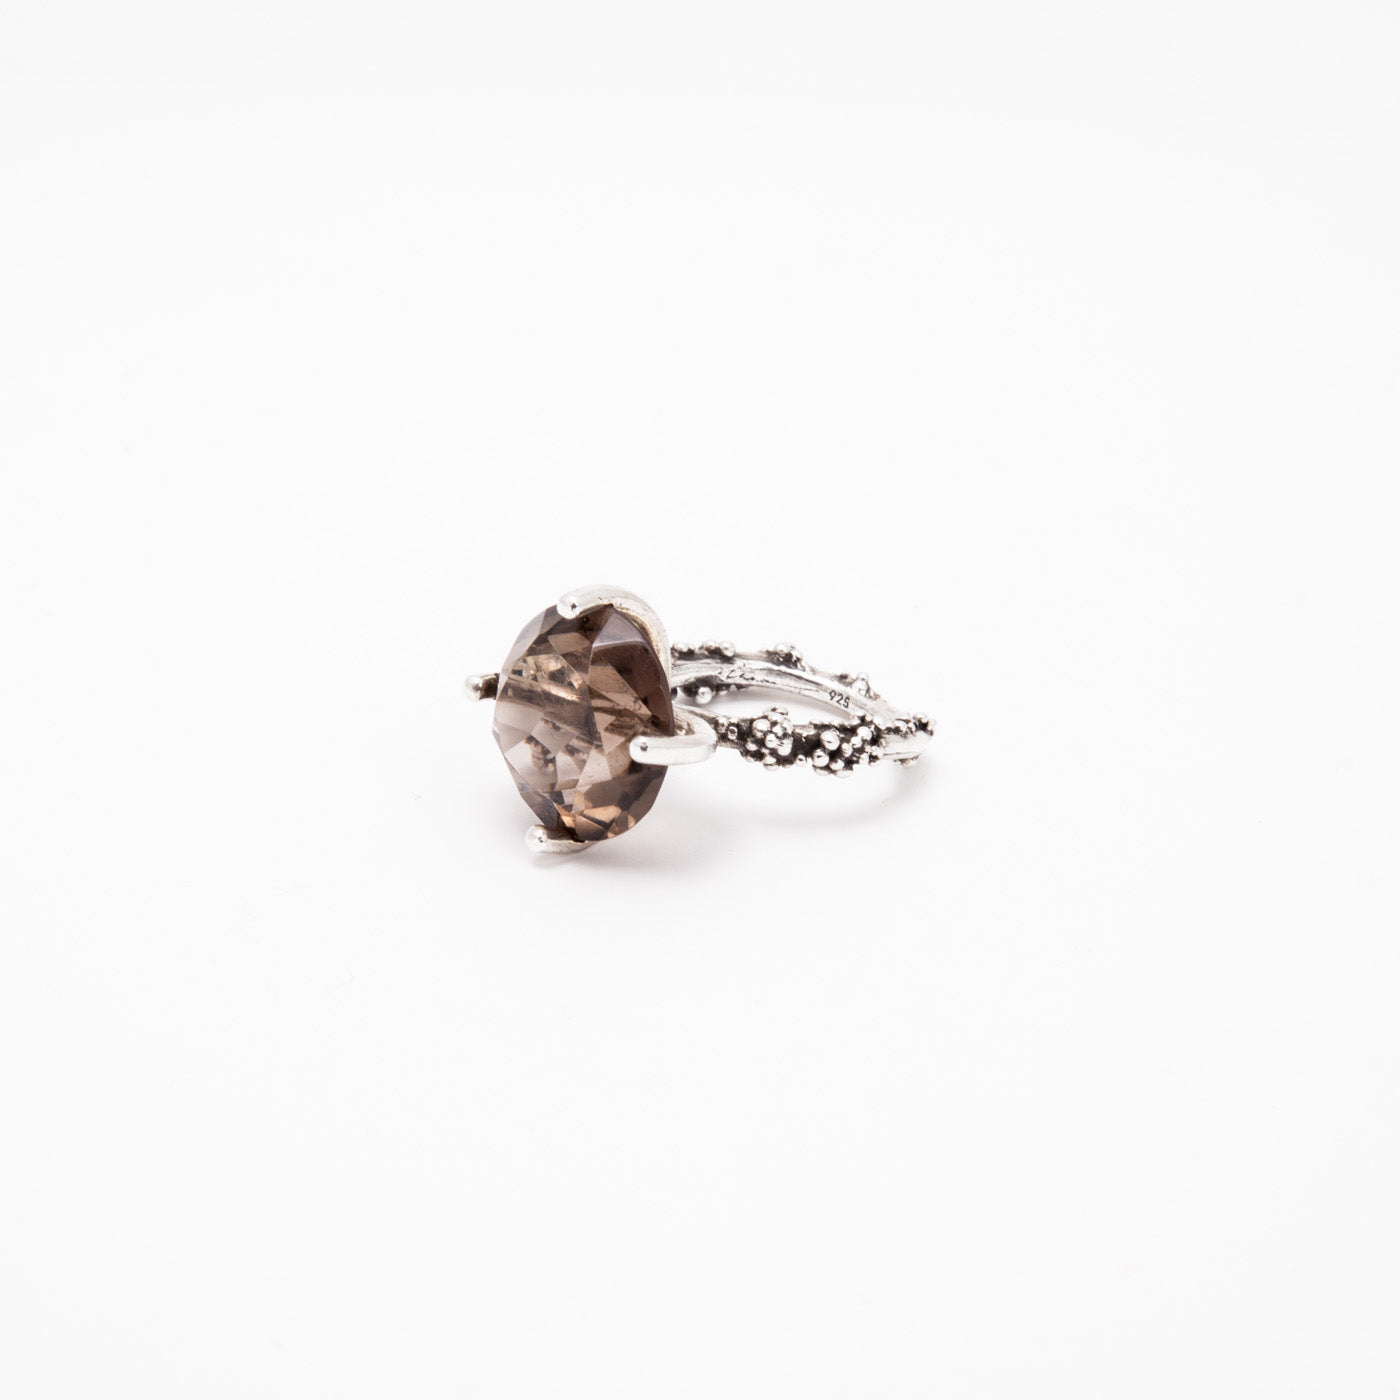 INNAN Jewellery designer Stardust Grace Ring in sterling silver with smoky quartz handmade in Berlin